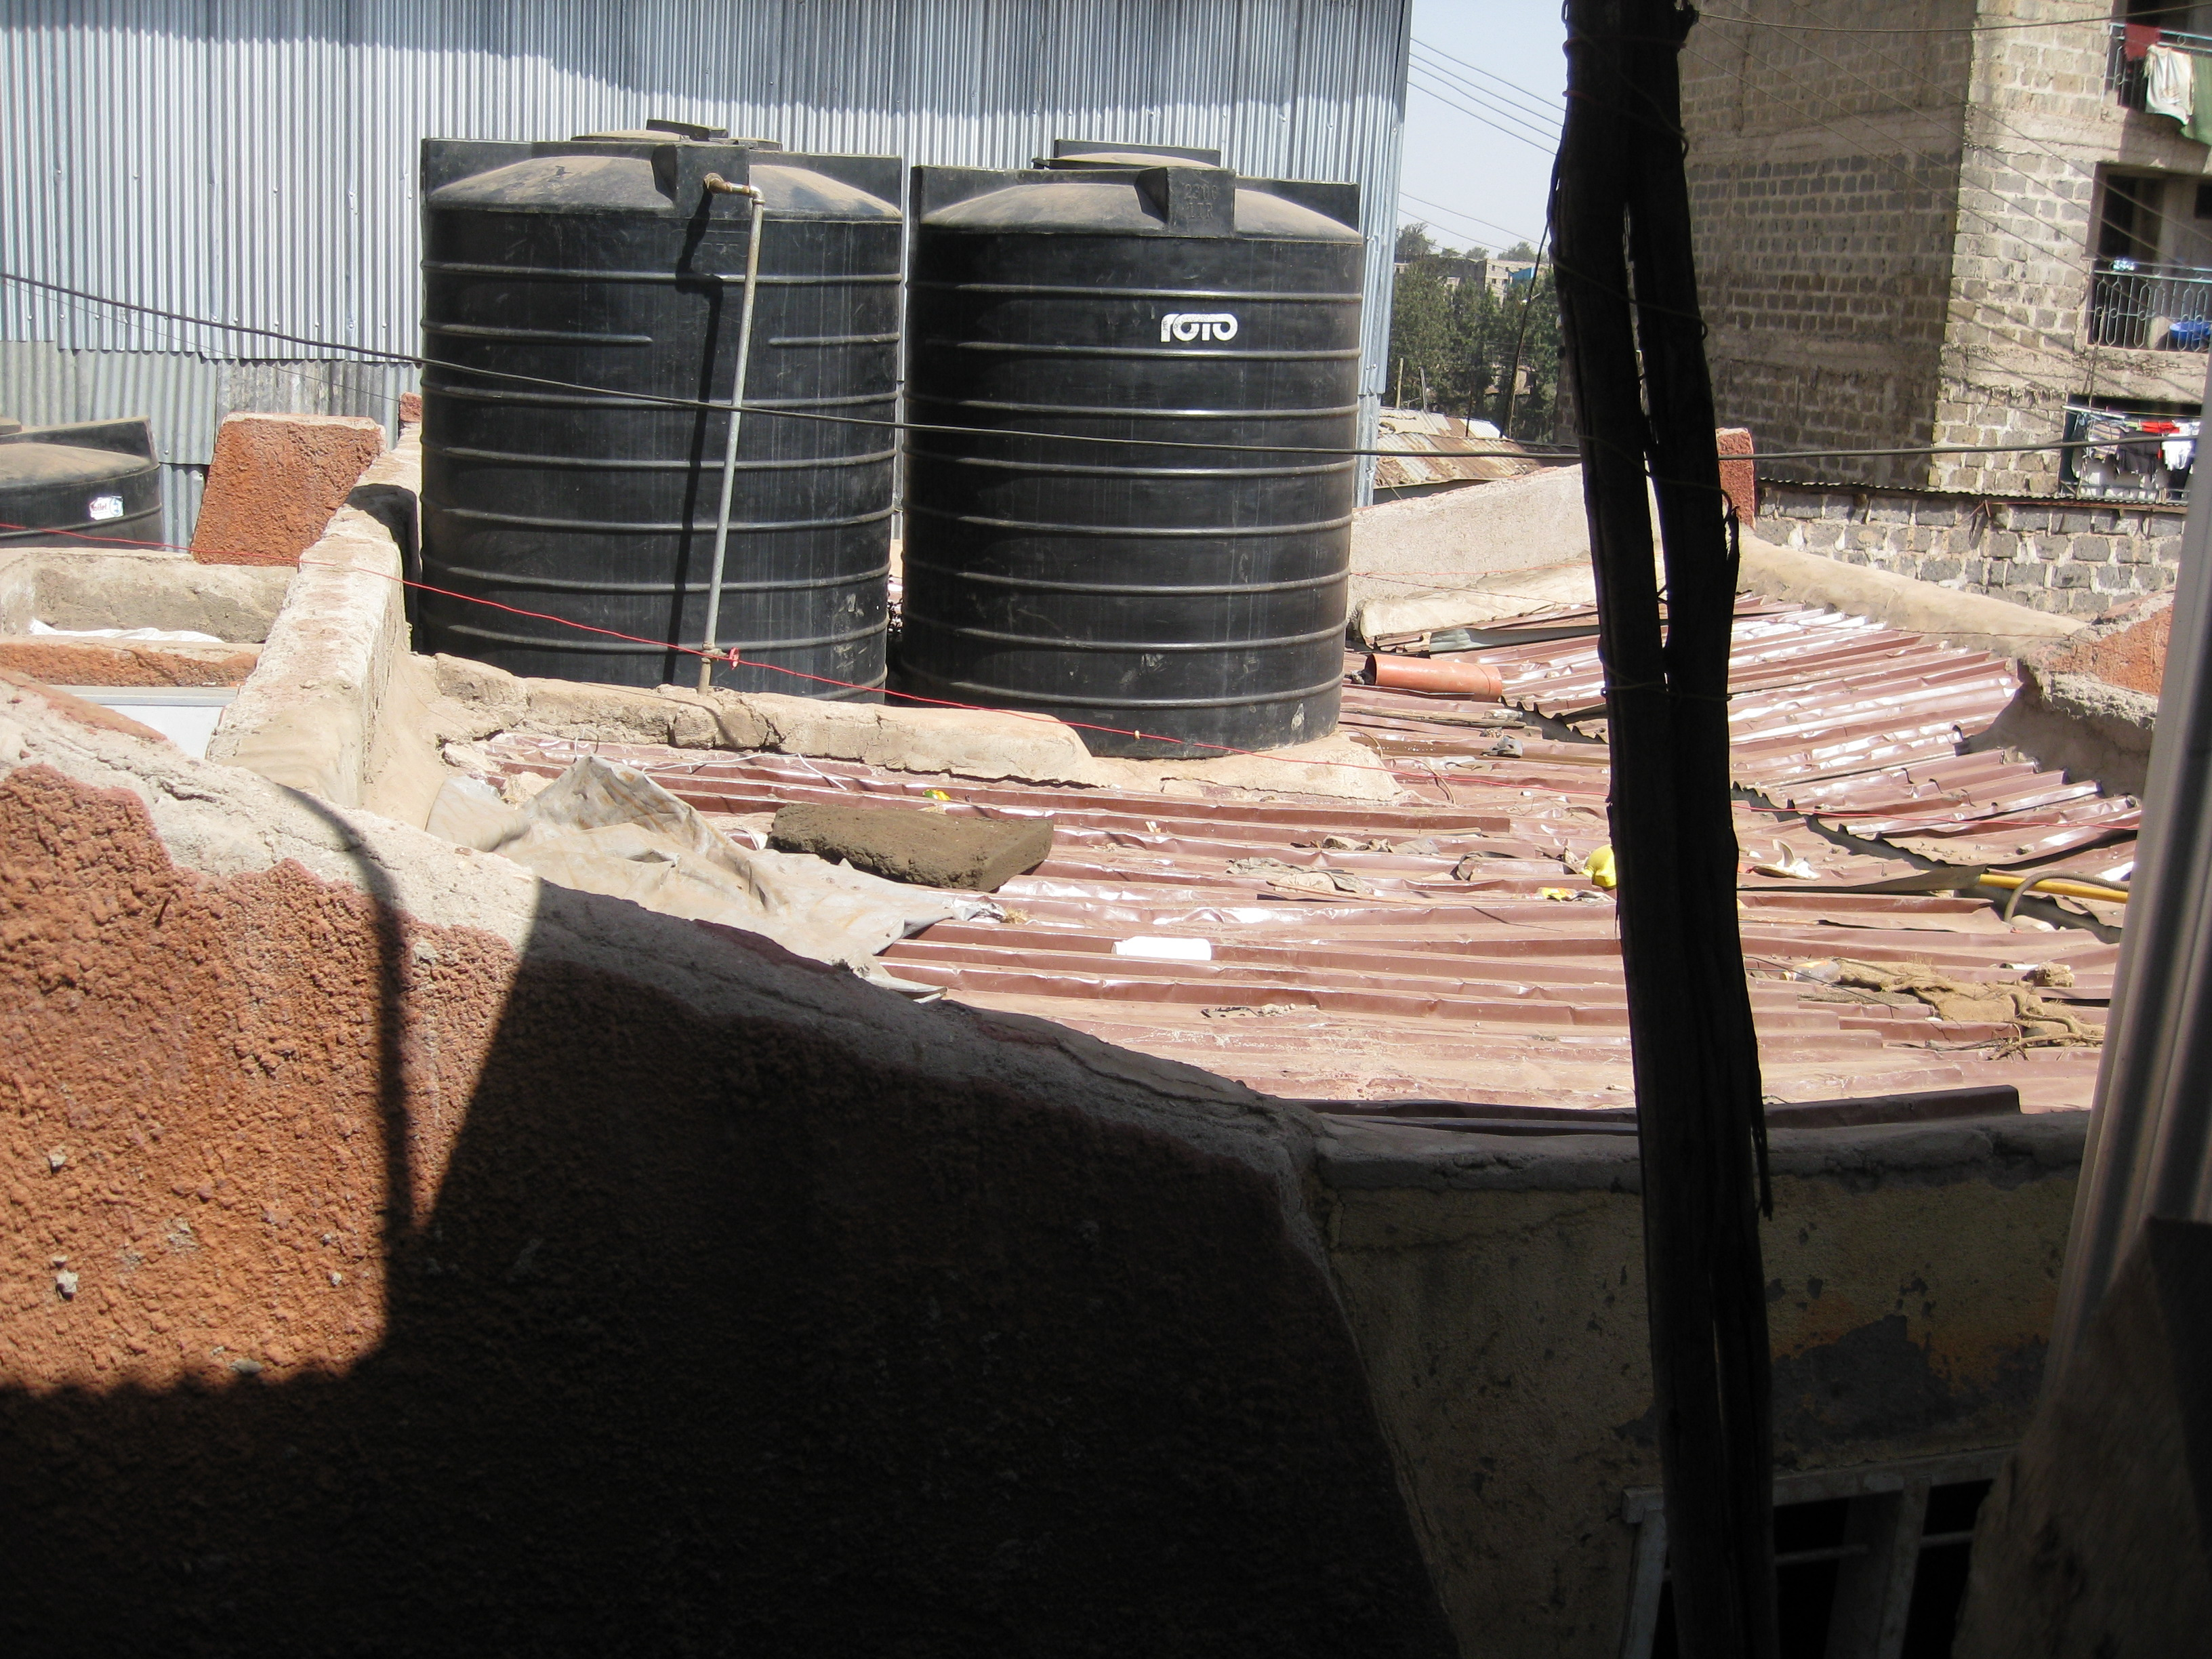 File:Water tanks on the roof of the Ikotoilet in Mathare (6619539027).